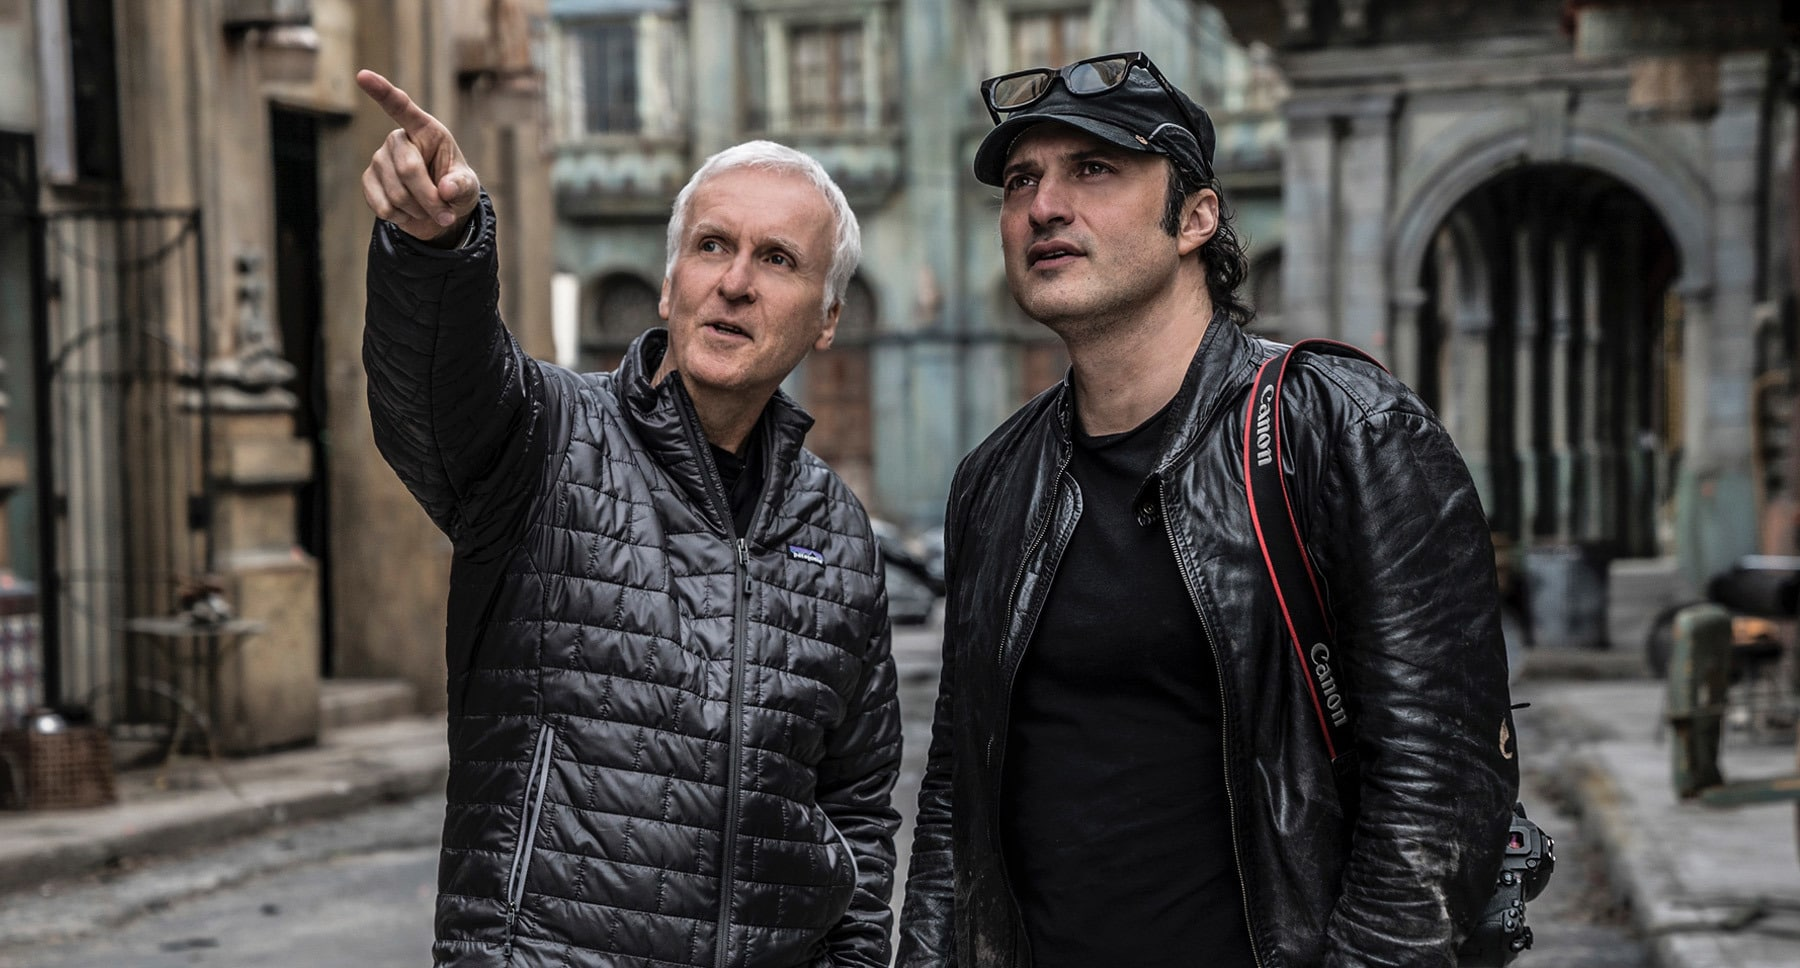 James Cameron and Robert Rodriguez from the movie Alita: Battle Angel